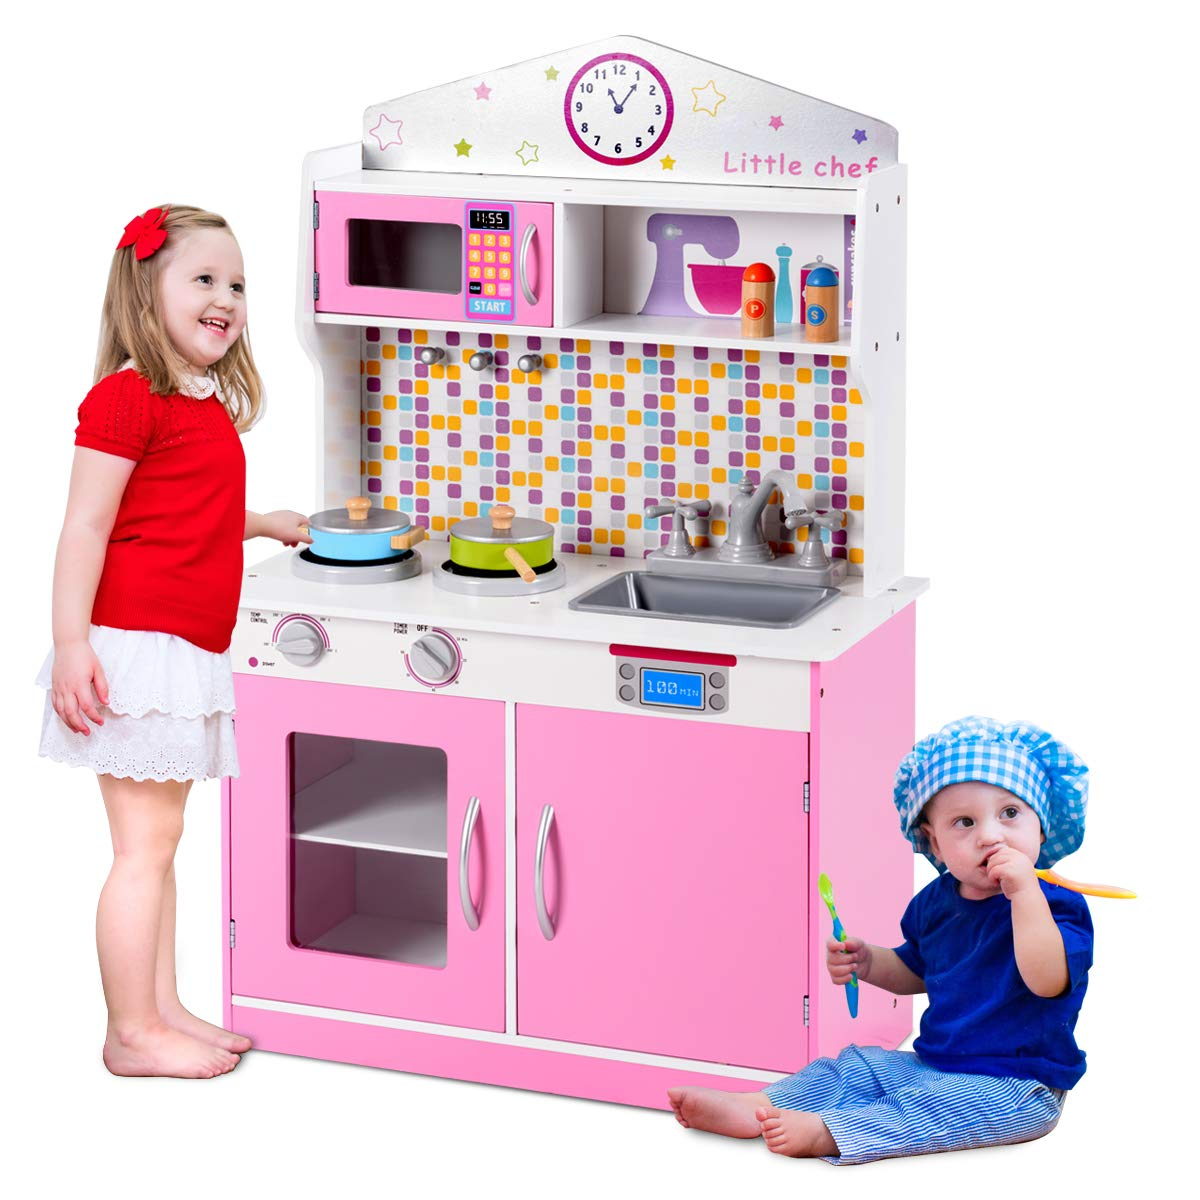 Costzon Kids Kitchen Playset, Wooden Cookware Pretend Cooking Food Set Toddler Gift Toy (Pink)